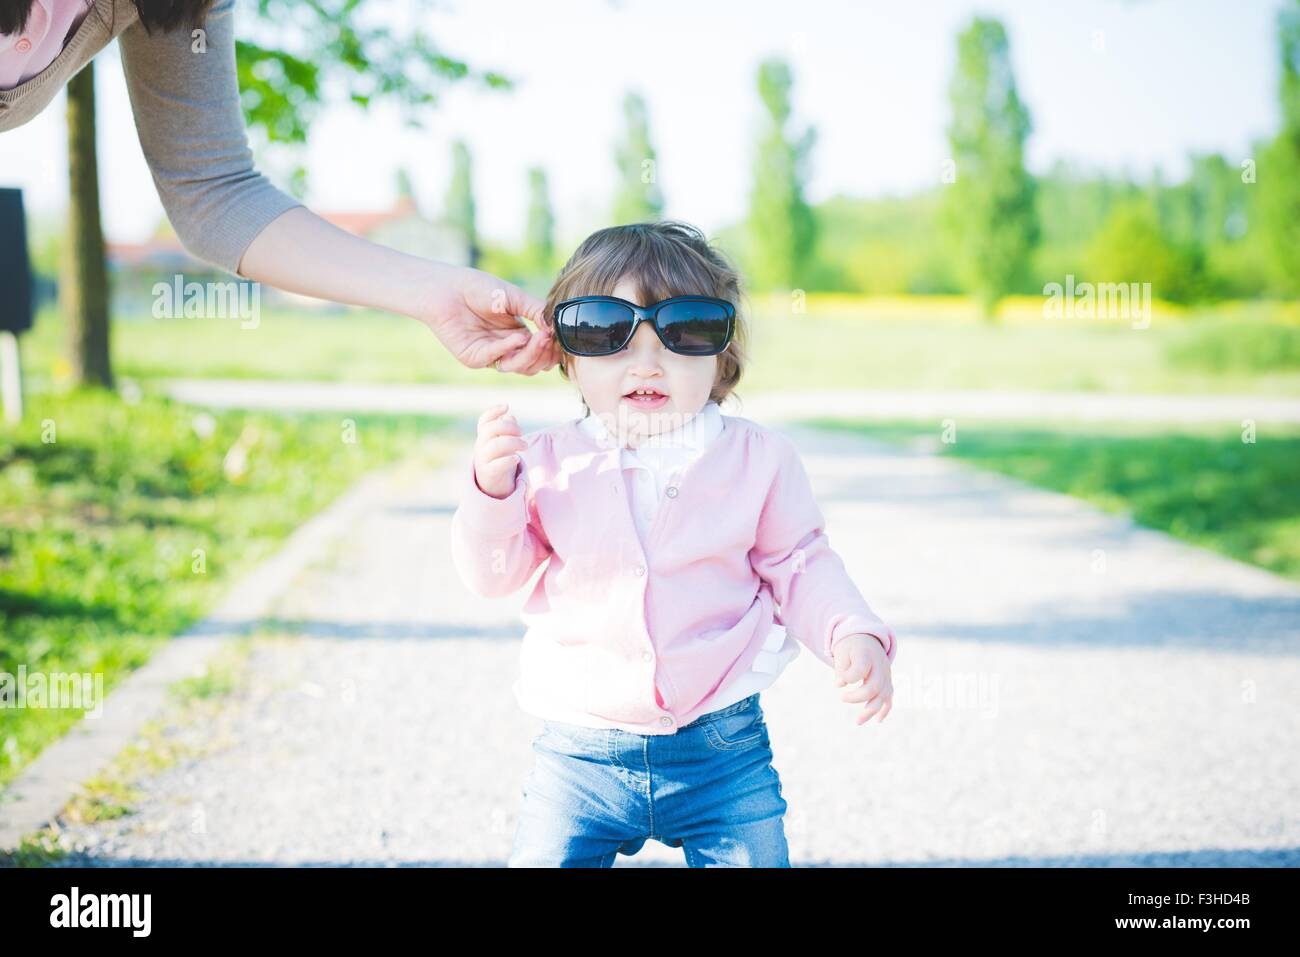 Portrait of female toddler wearing sunglasses in park - Stock Image